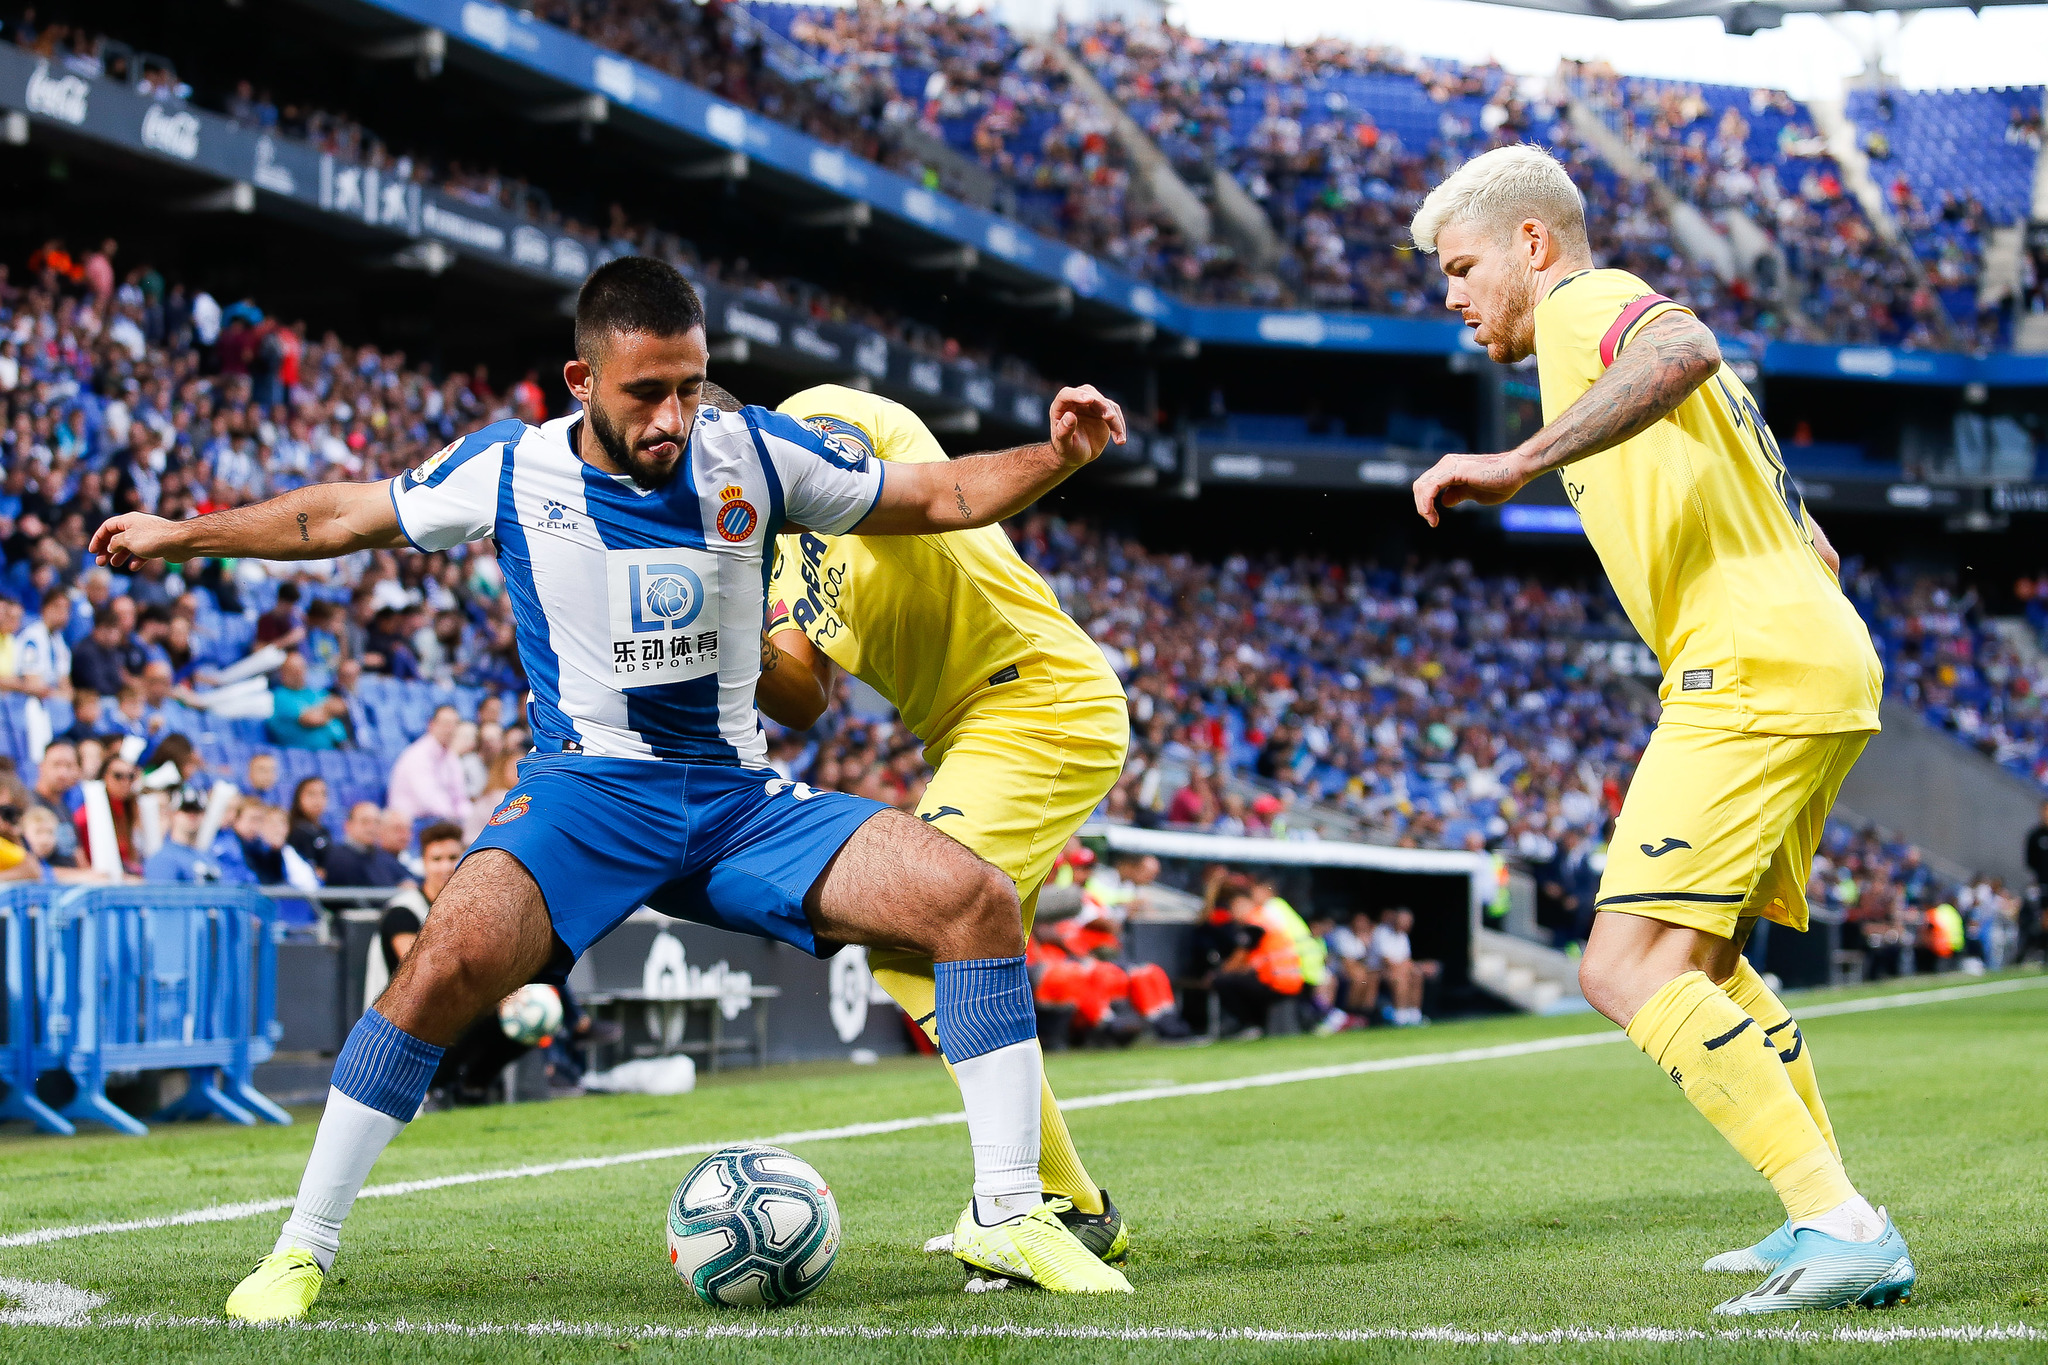 BARCELONA, SPAIN - OCTOBER 20: Matias Vargas of RCD <HIT>Espanyol</HIT> challenges the ball against Alberto Moreno of Villareal CF during the Liga match between RCD <HIT>Espanyol</HIT> and Villarreal CF at RCDE Stadium on October 20, 2019 in Barcelona, Spain. (Photo by Eric Alonso/Getty Images)